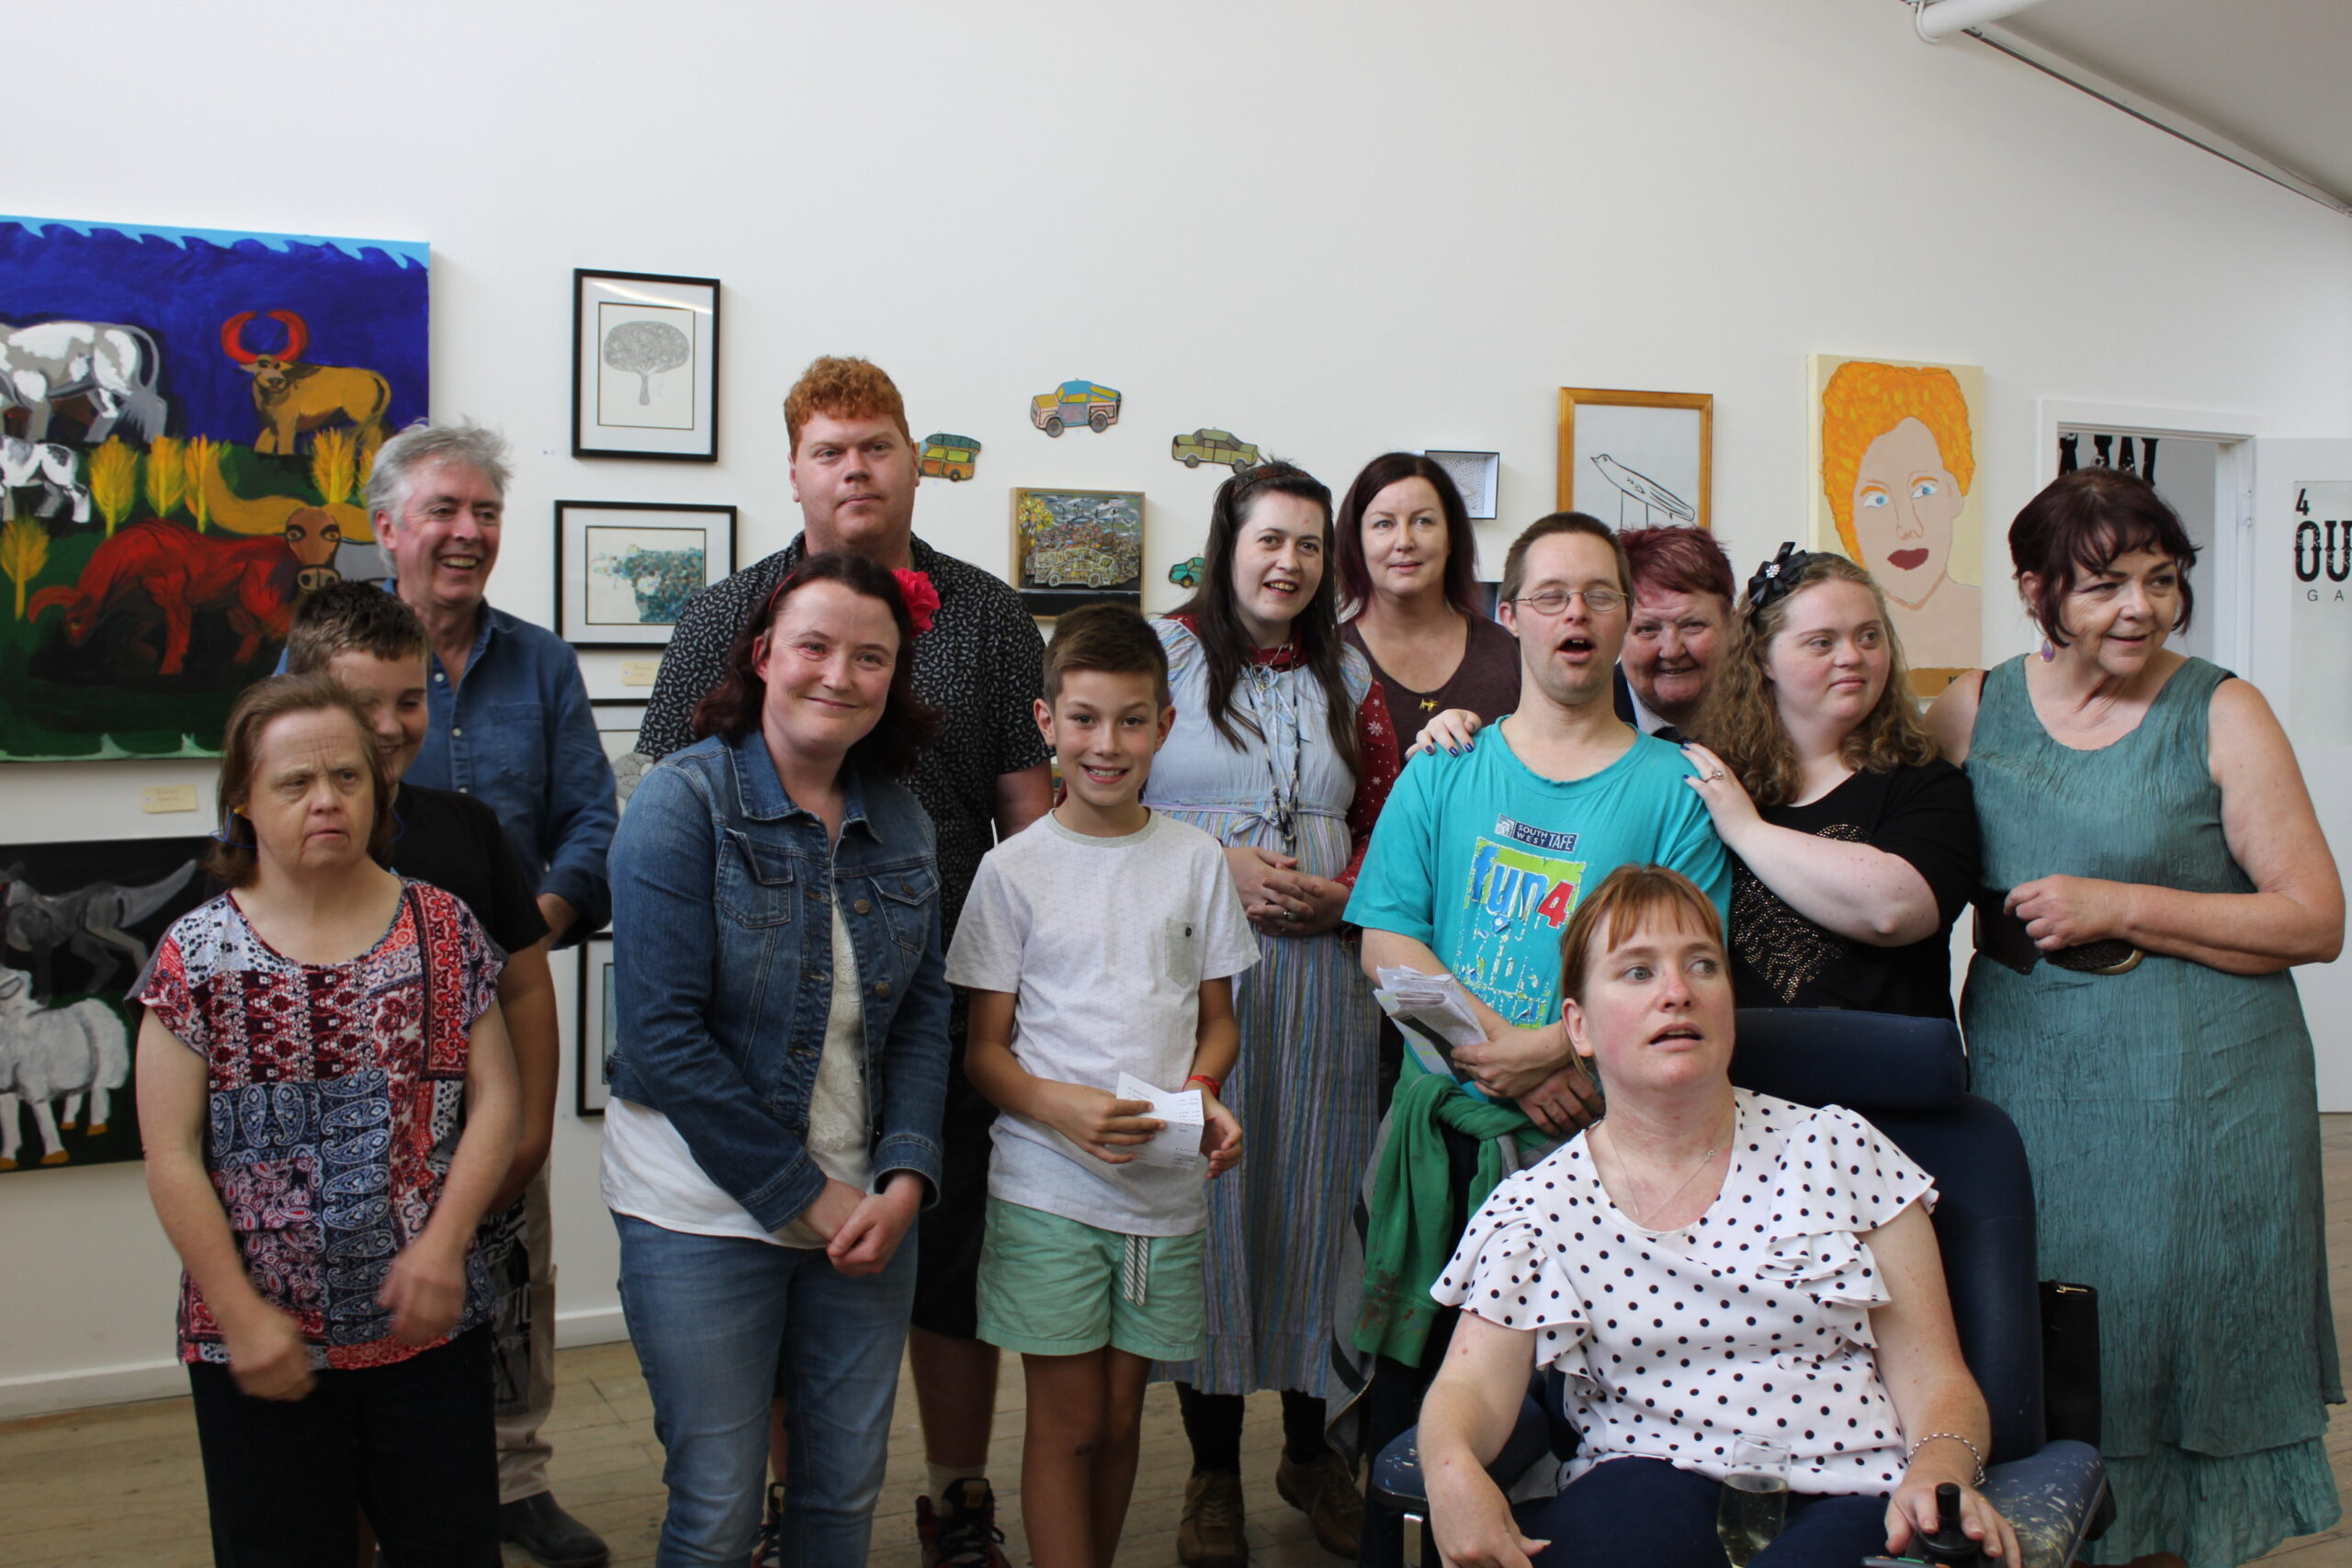 A group of nine artists and three mentors at the launch of the Mentors and Makers 2 exhibition for artists with disabilities and their mentors